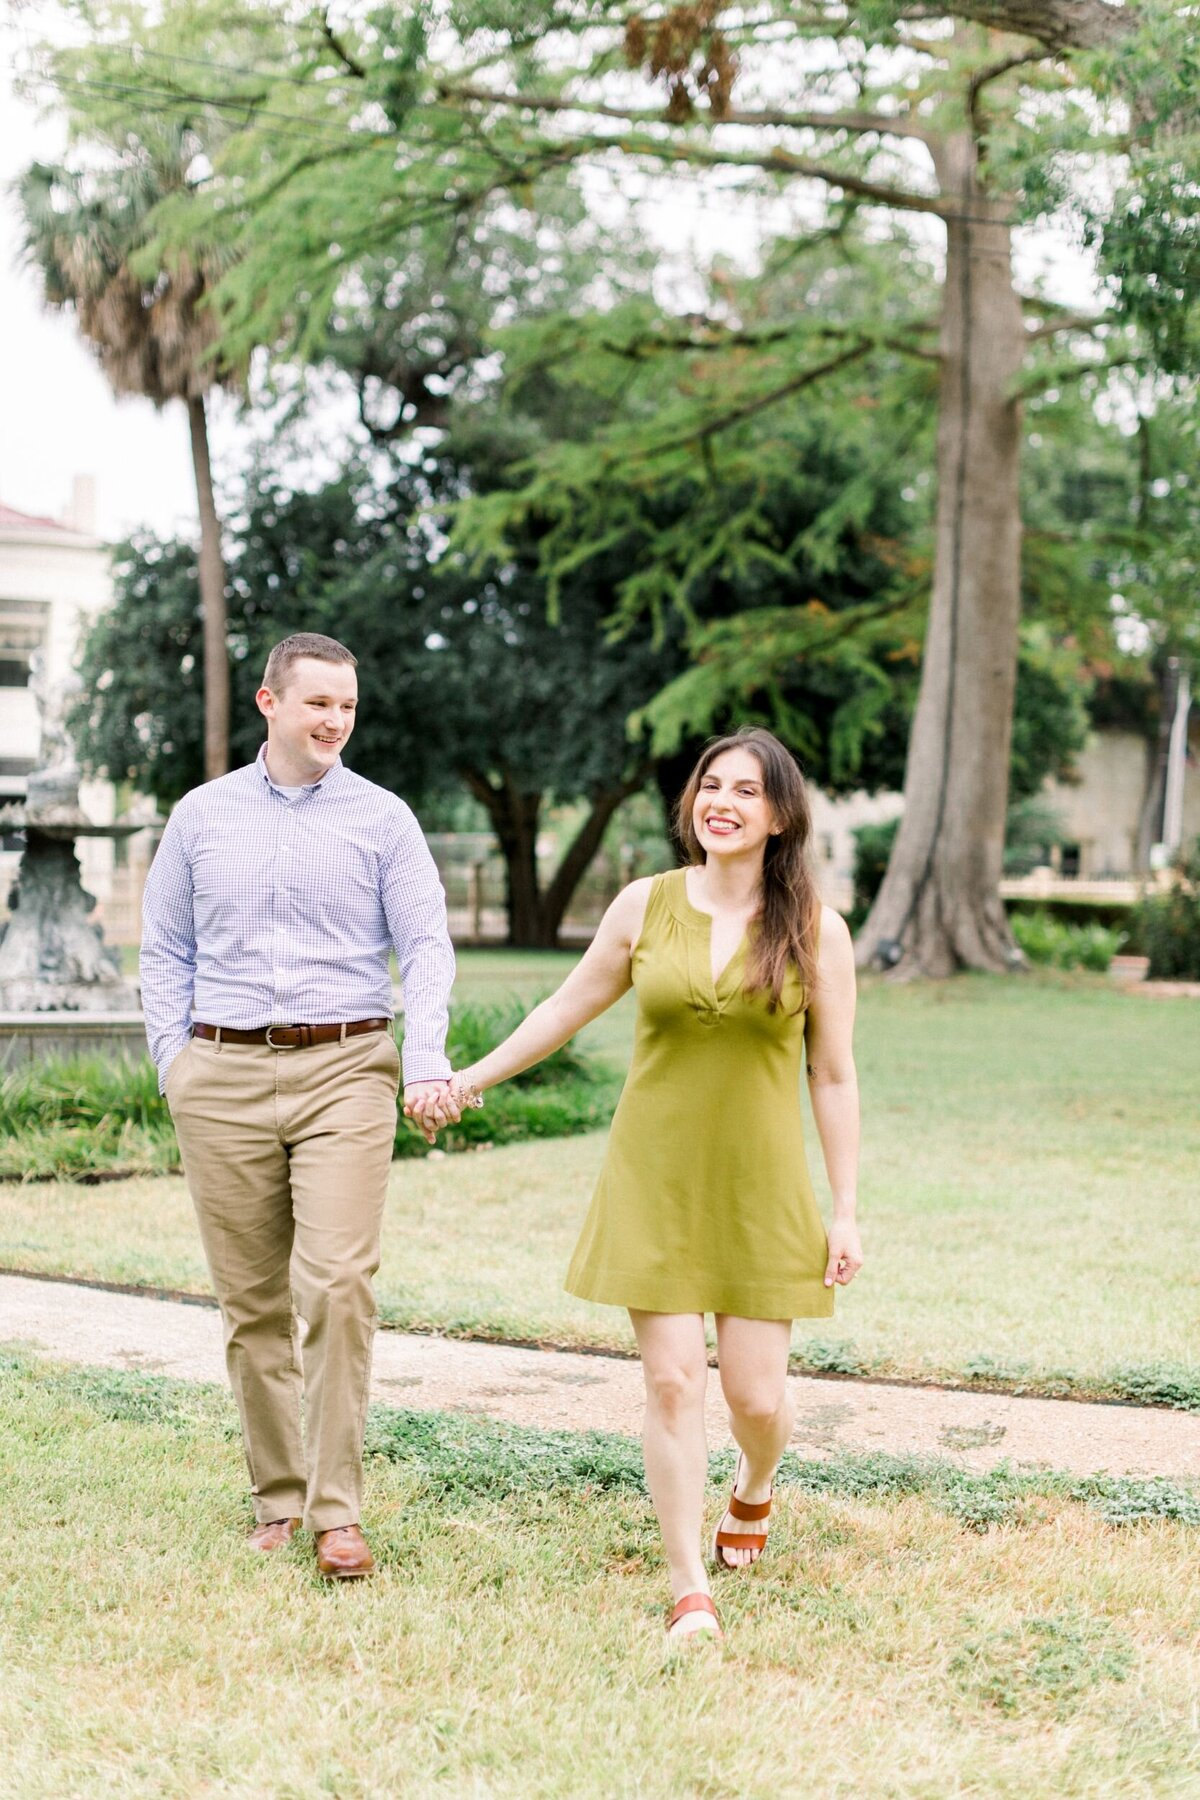 KingWilliamEngagement-AnnaKayPhotography-SanAntonioWeddingPhotographer-13